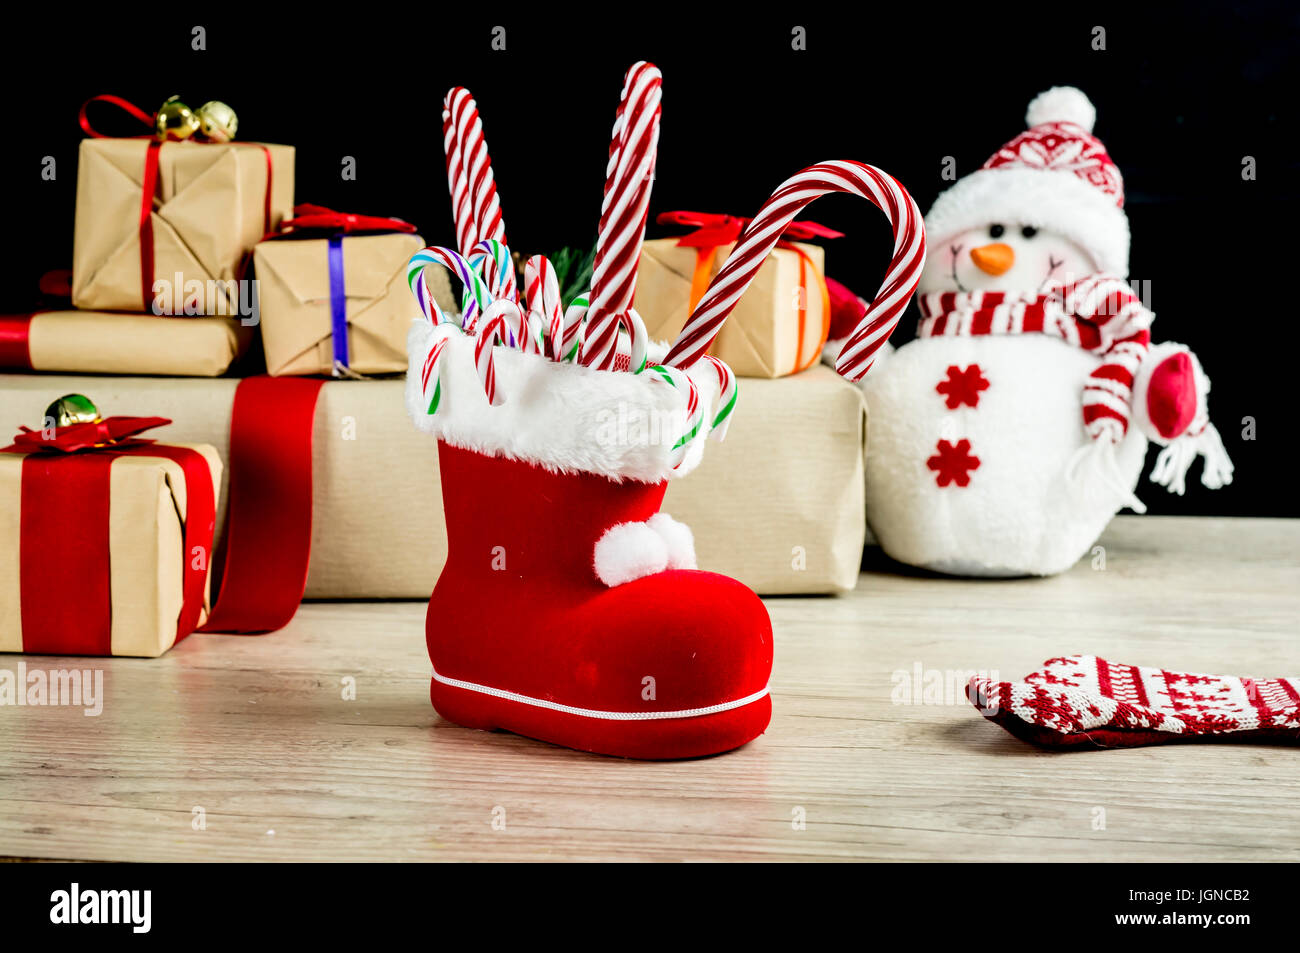 Christmas Boot Fill With Candy Canes With Snowman And